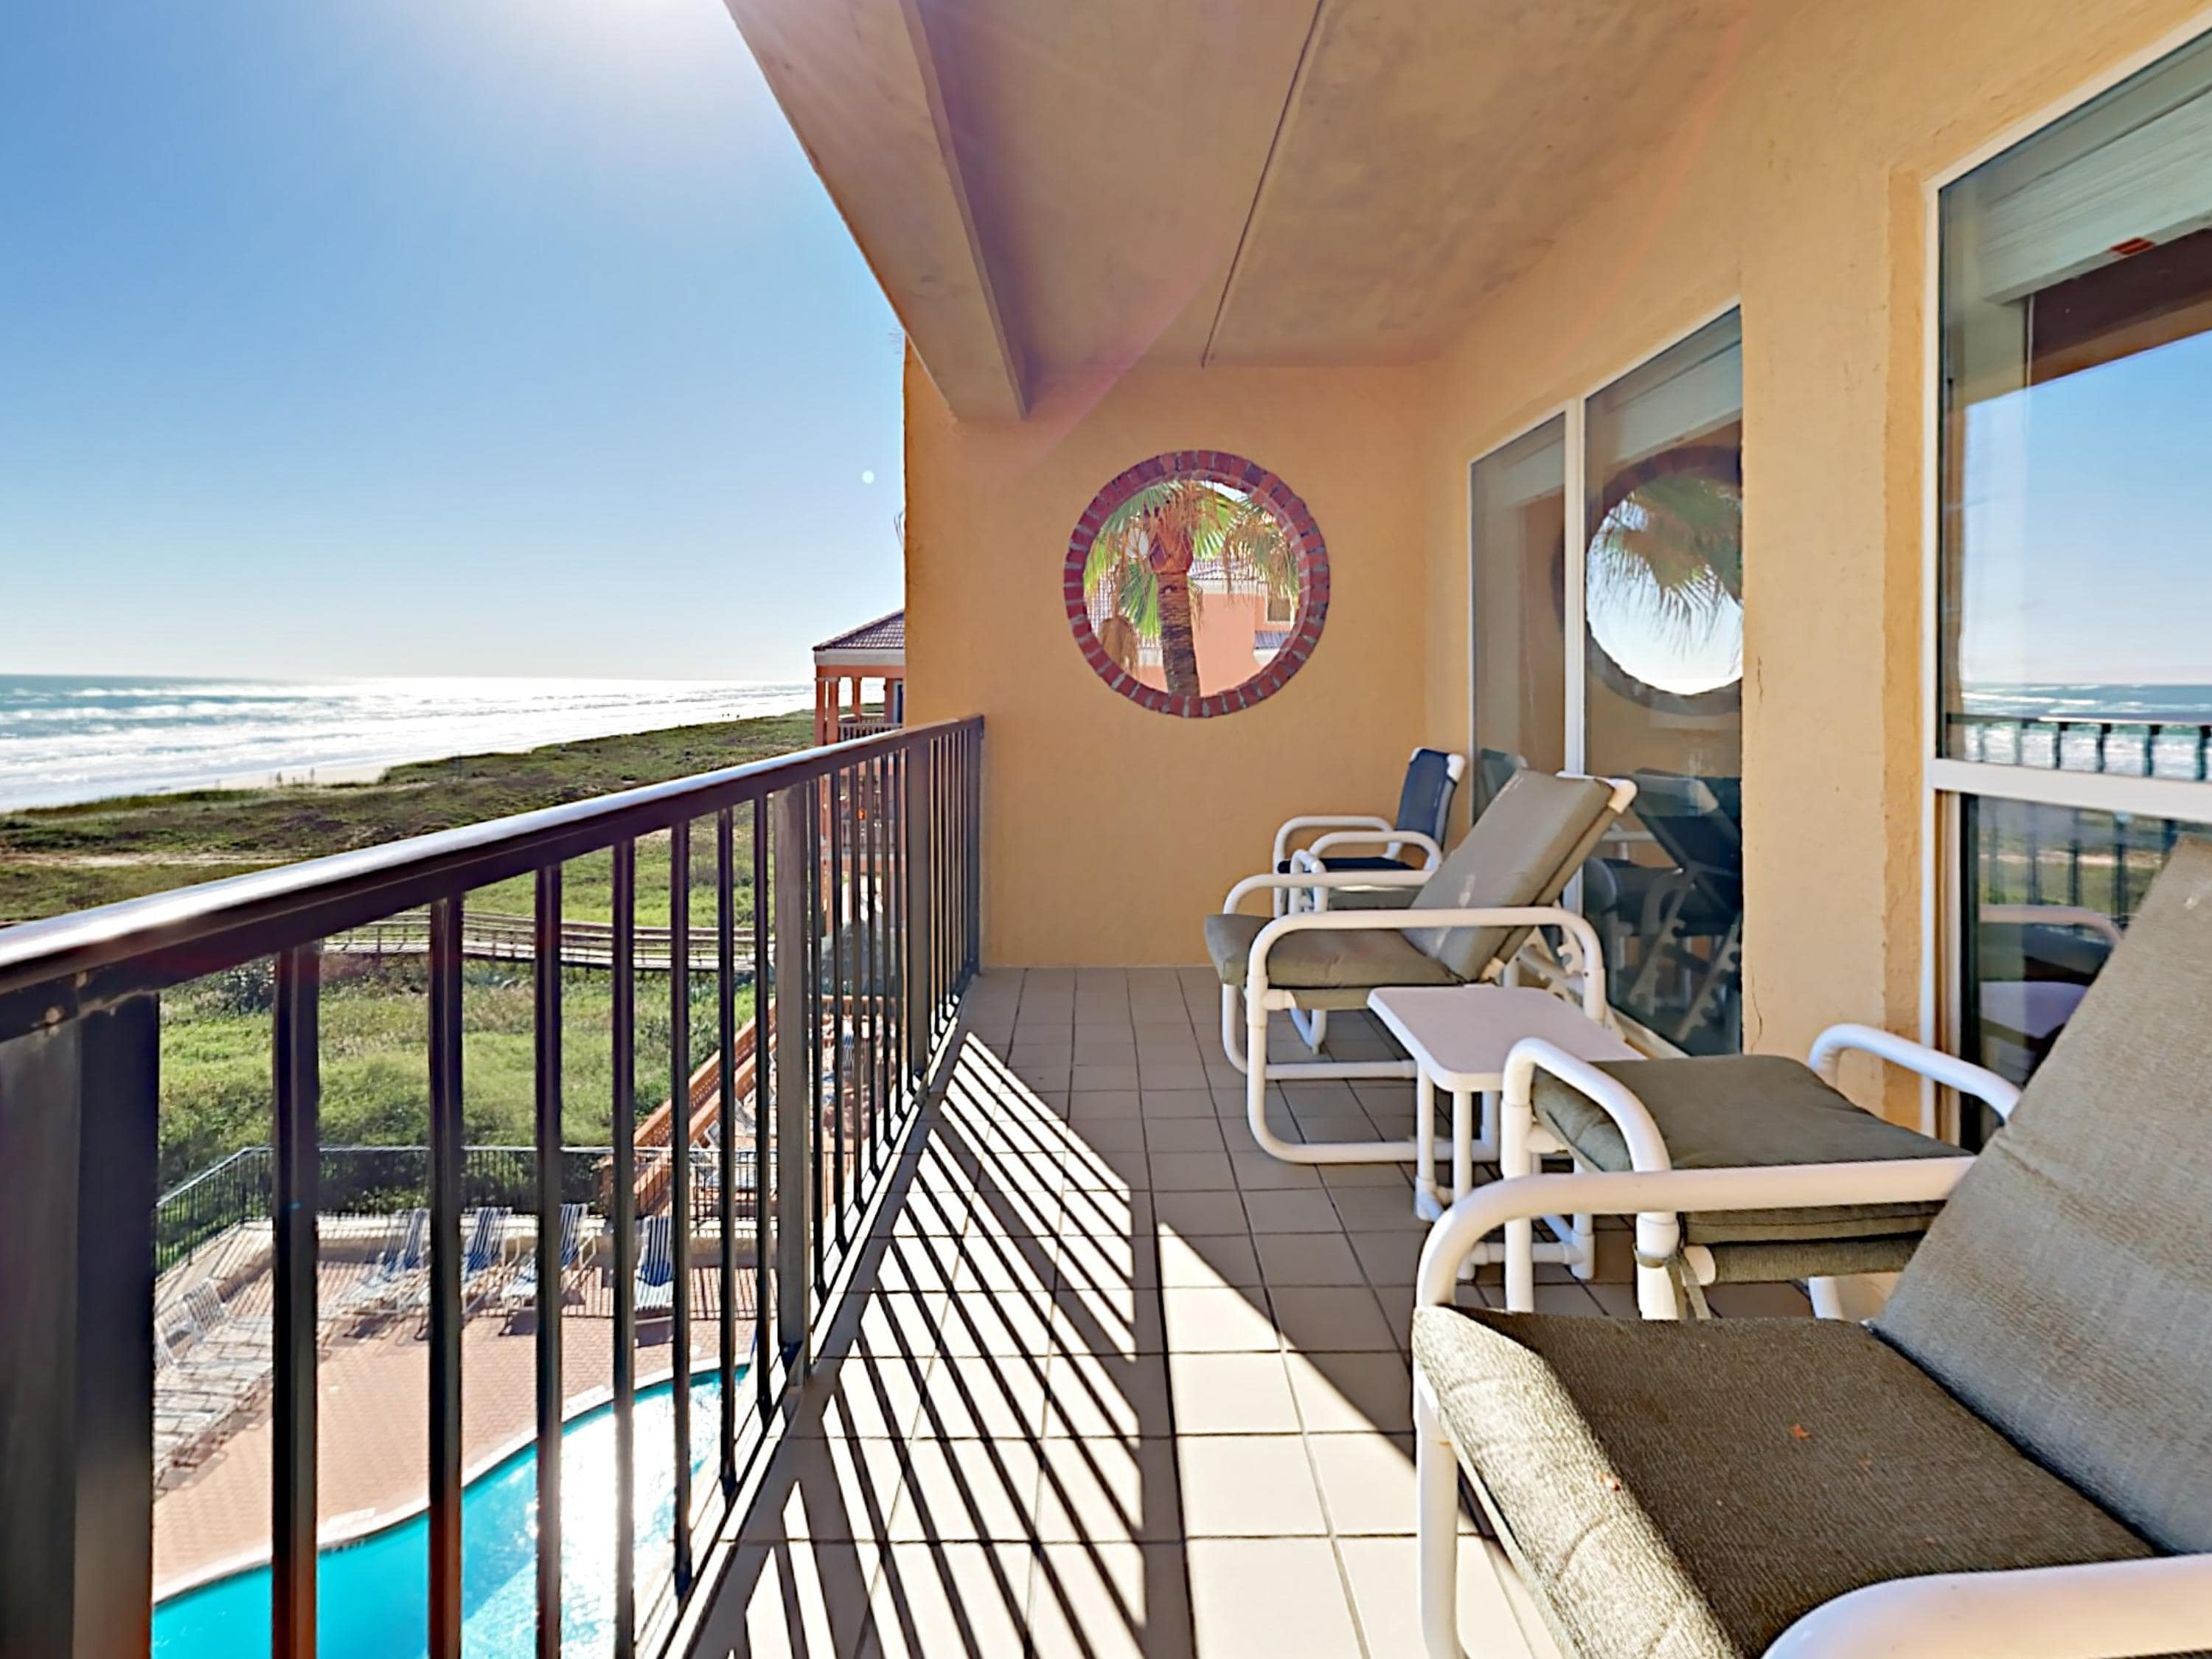 Enjoy stunning Gulf views from your furnished balcony. This property is maintained and managed by TurnKey Vacation Rentals.